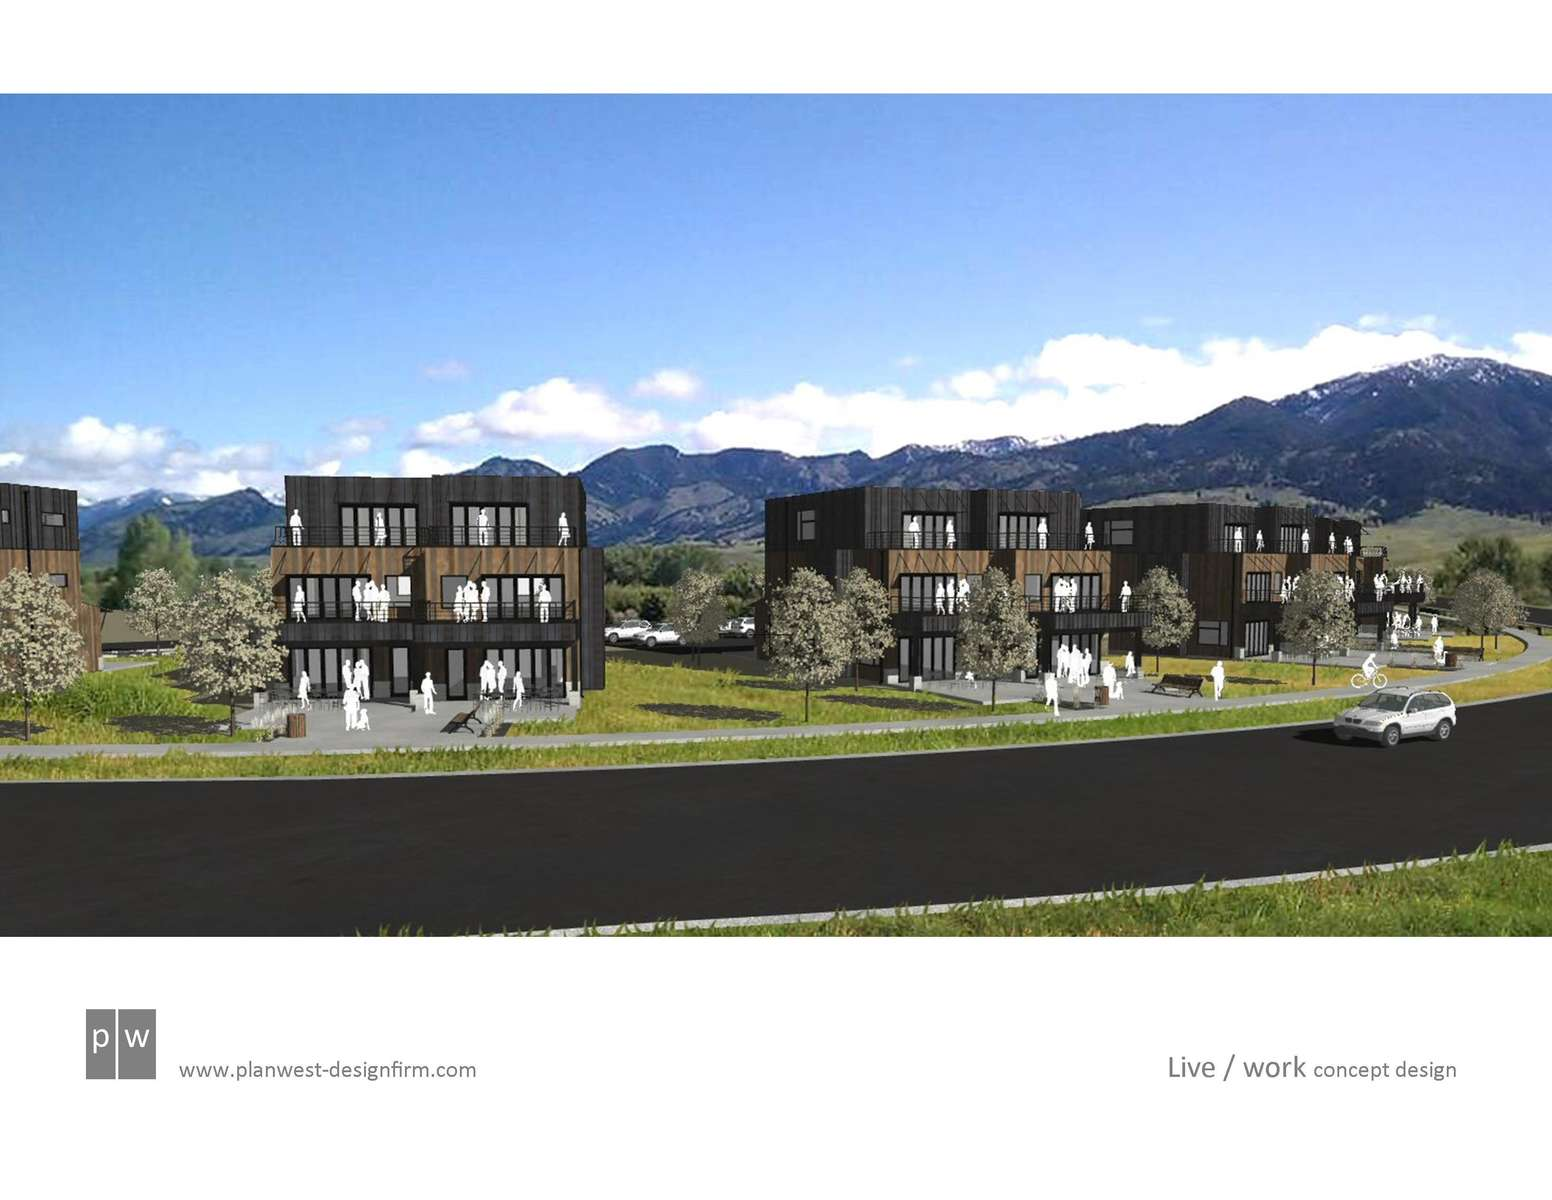 plan-west-design-firm-_-projects-in-process-710